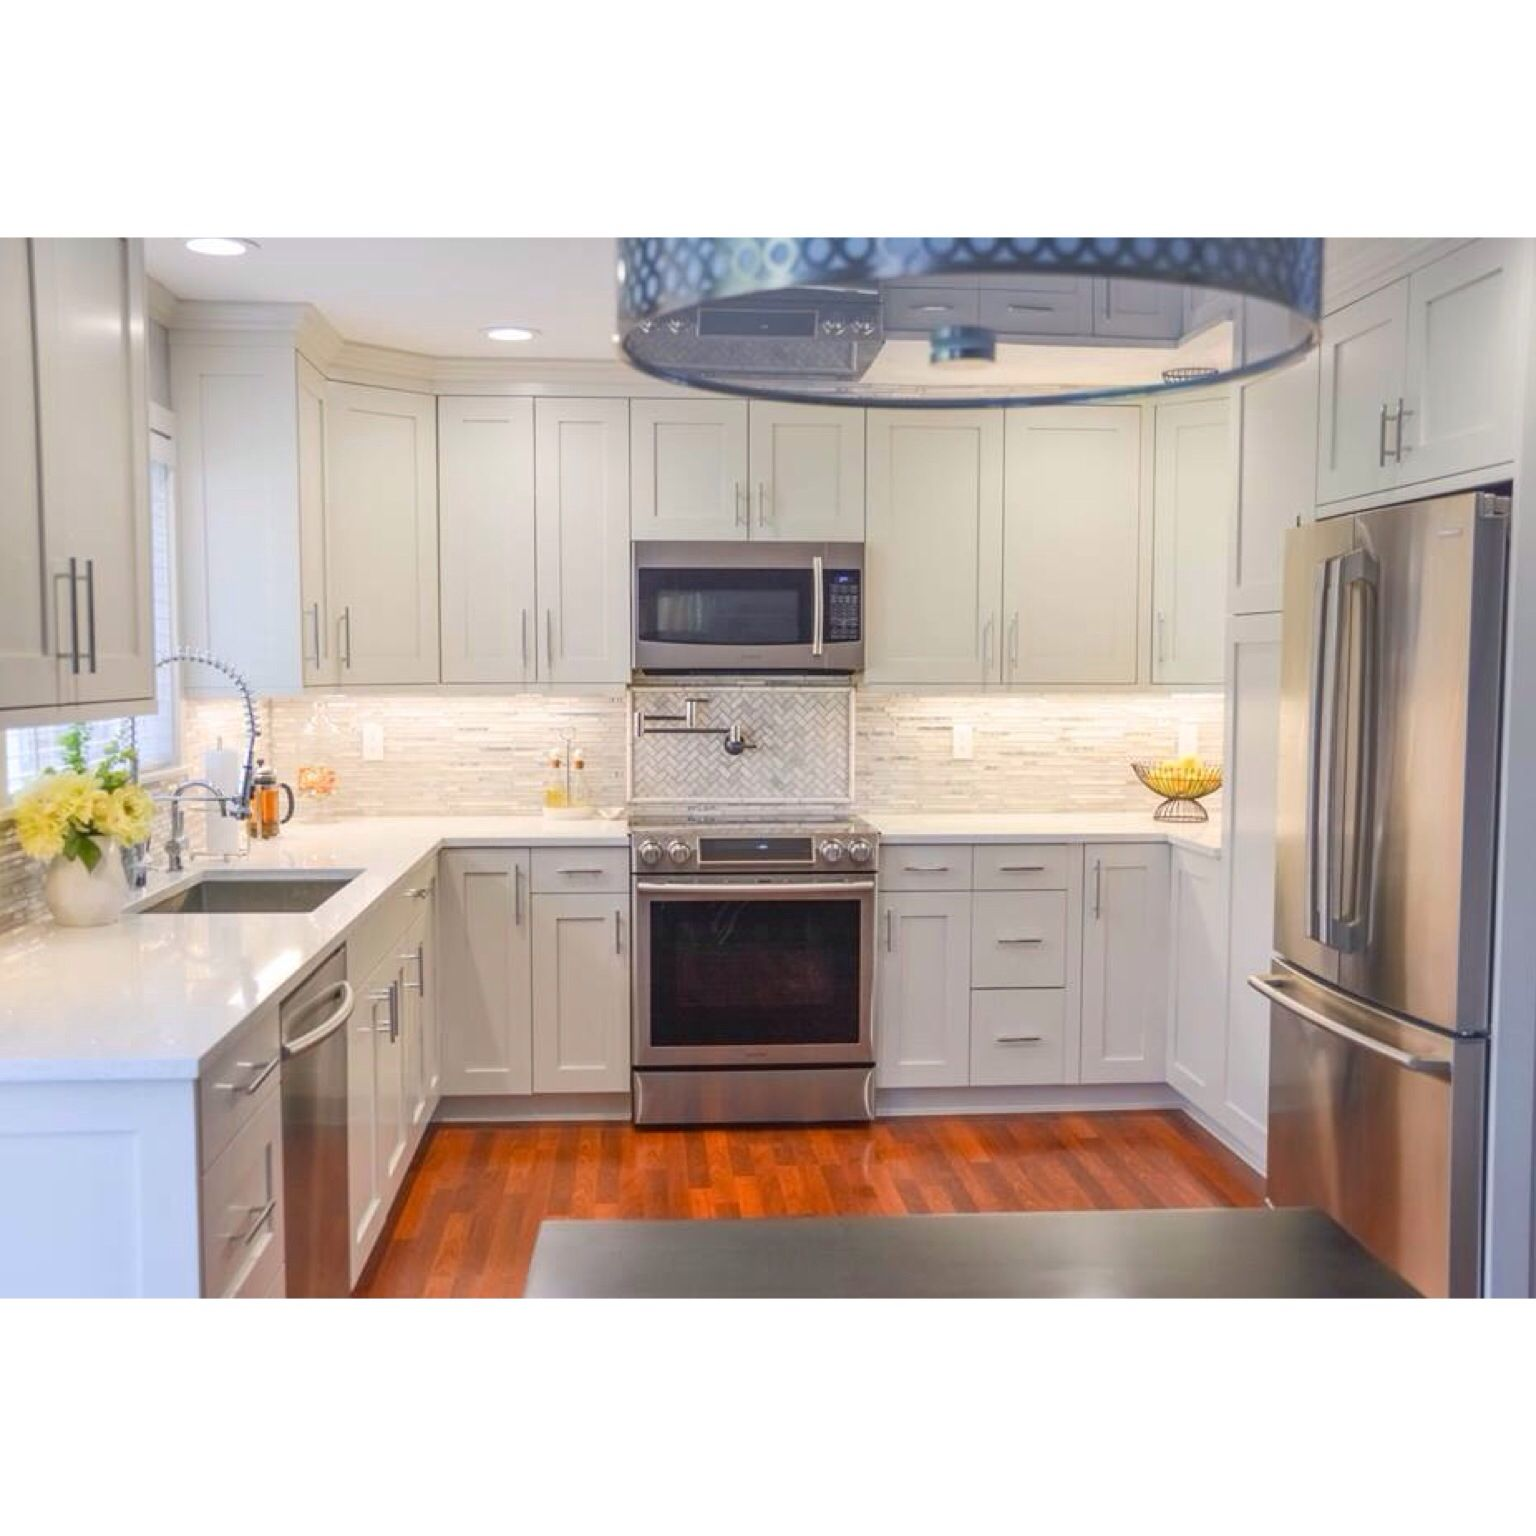 Gray Cabinets Kitchen Remodeling St Louis Image Result For Benjamin Moore Classic